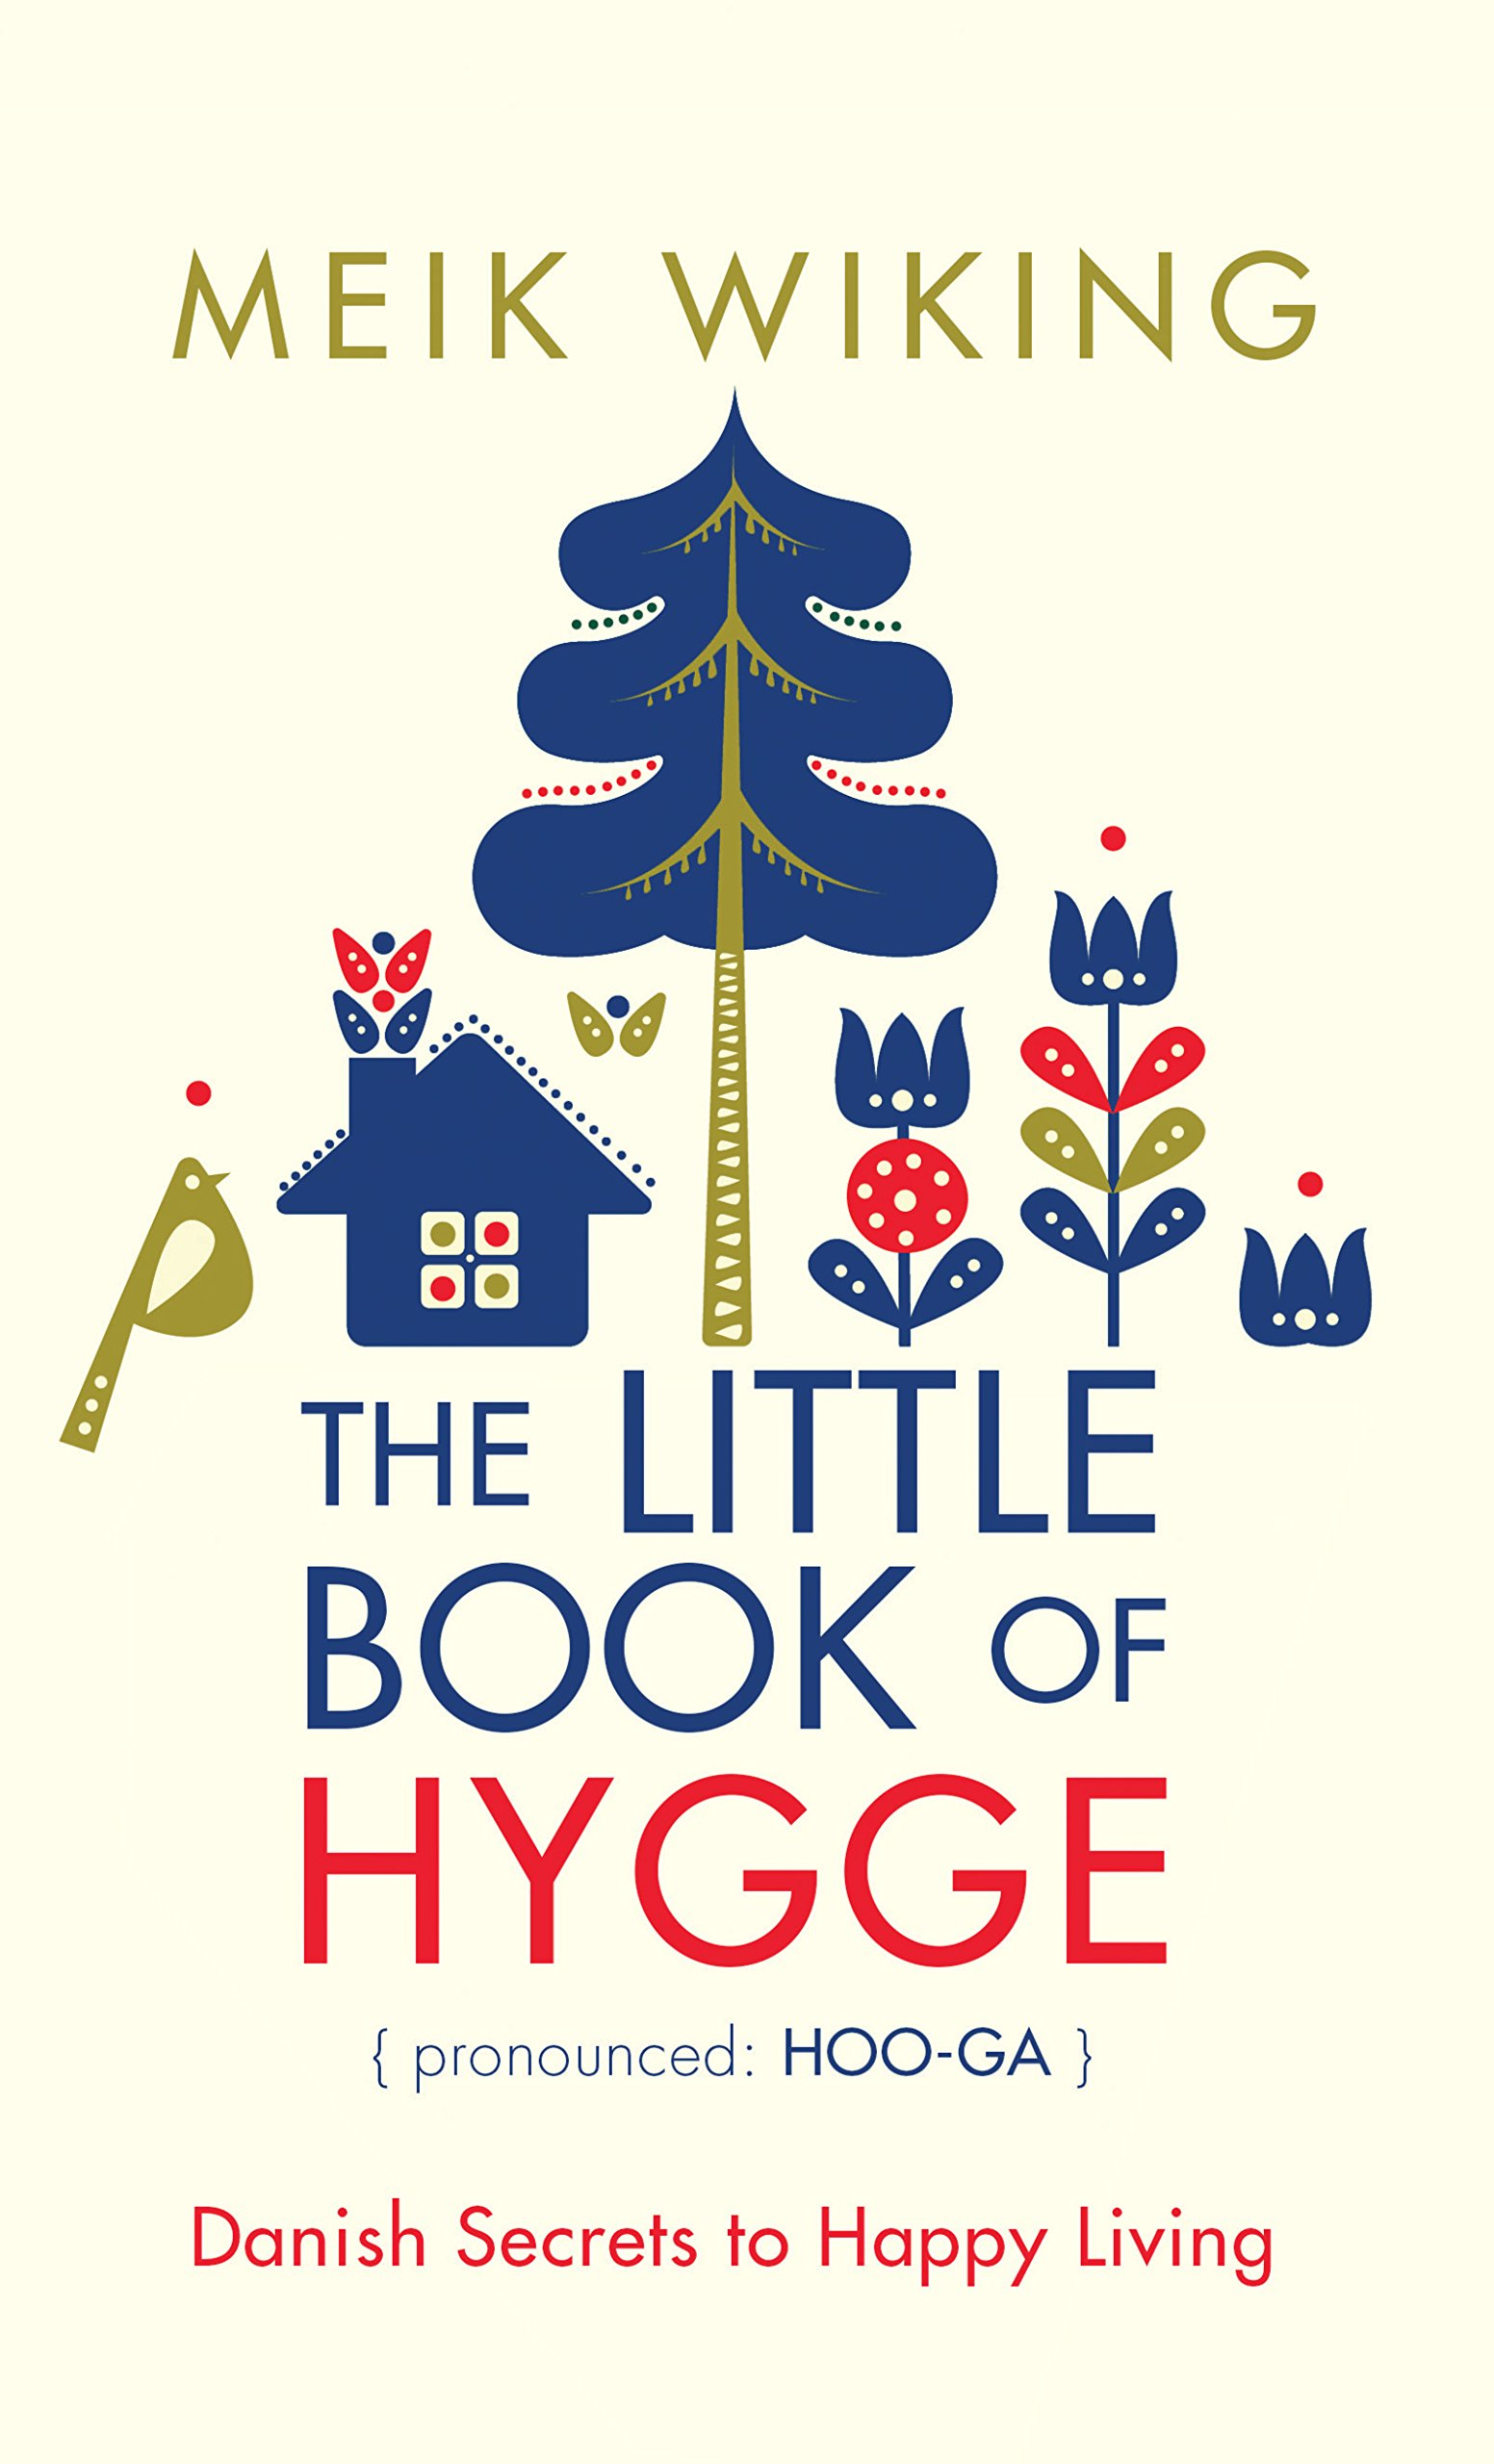 The Little Book of Hygge: Danish Secrets to Happy Living Thorndike Large Print Lifestyles: Amazon.es: Meik Wiking: Libros en idiomas extranjeros